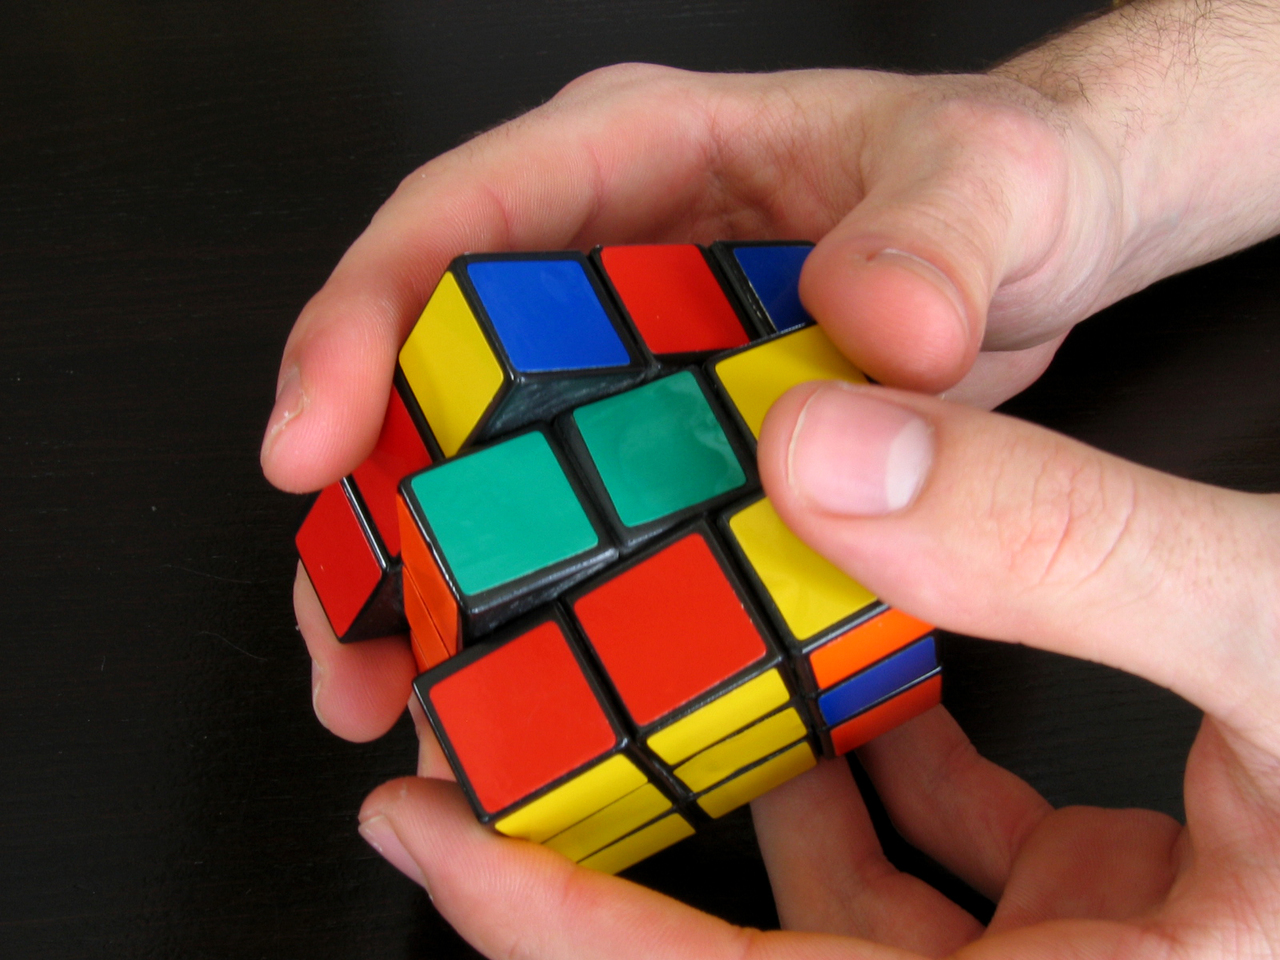 Teenage Boy From China Solver Three Rubik's Cube with hands and feet at the same time, makes record